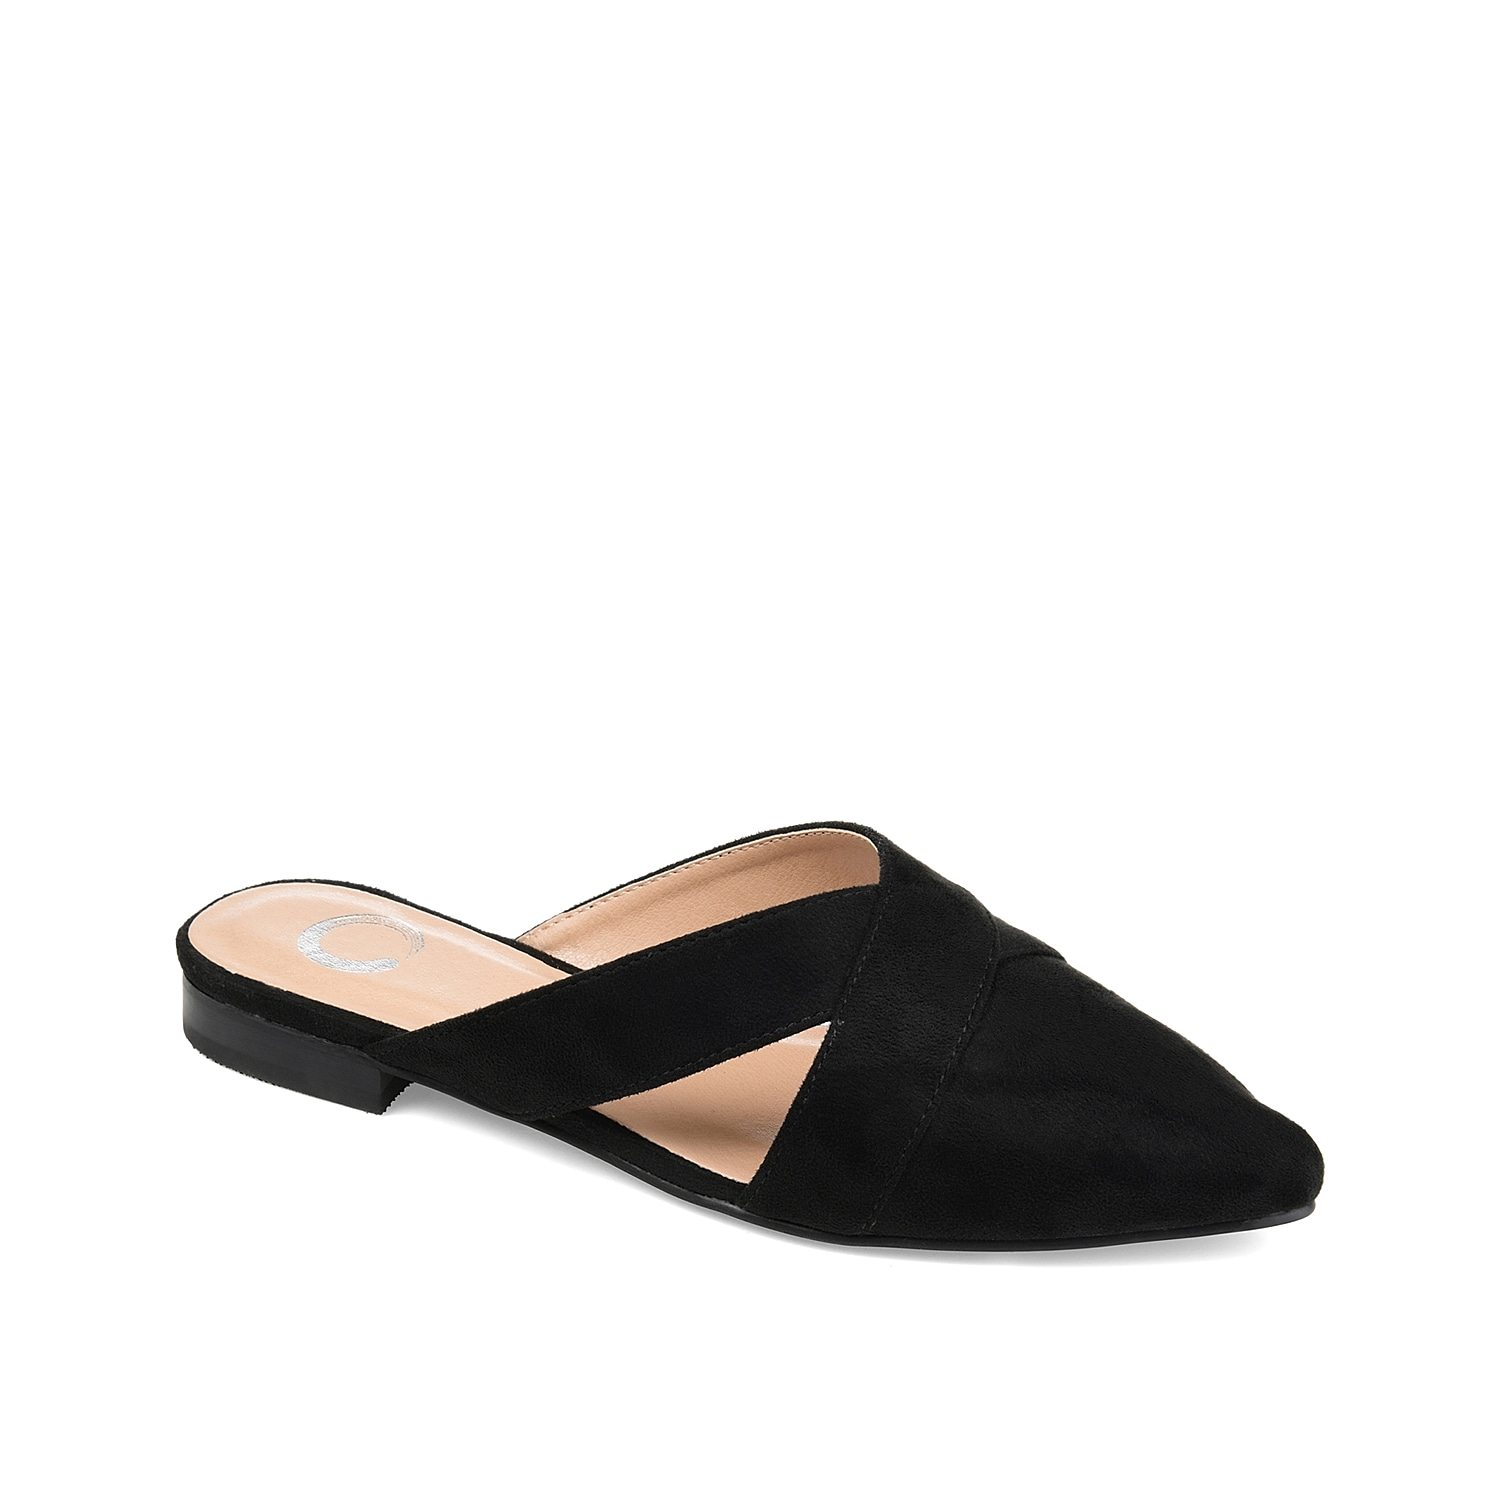 Slide into uniquely chic style with the Giada mule from Journee Collection. Criss cross straps create side cut outs for modern styling.